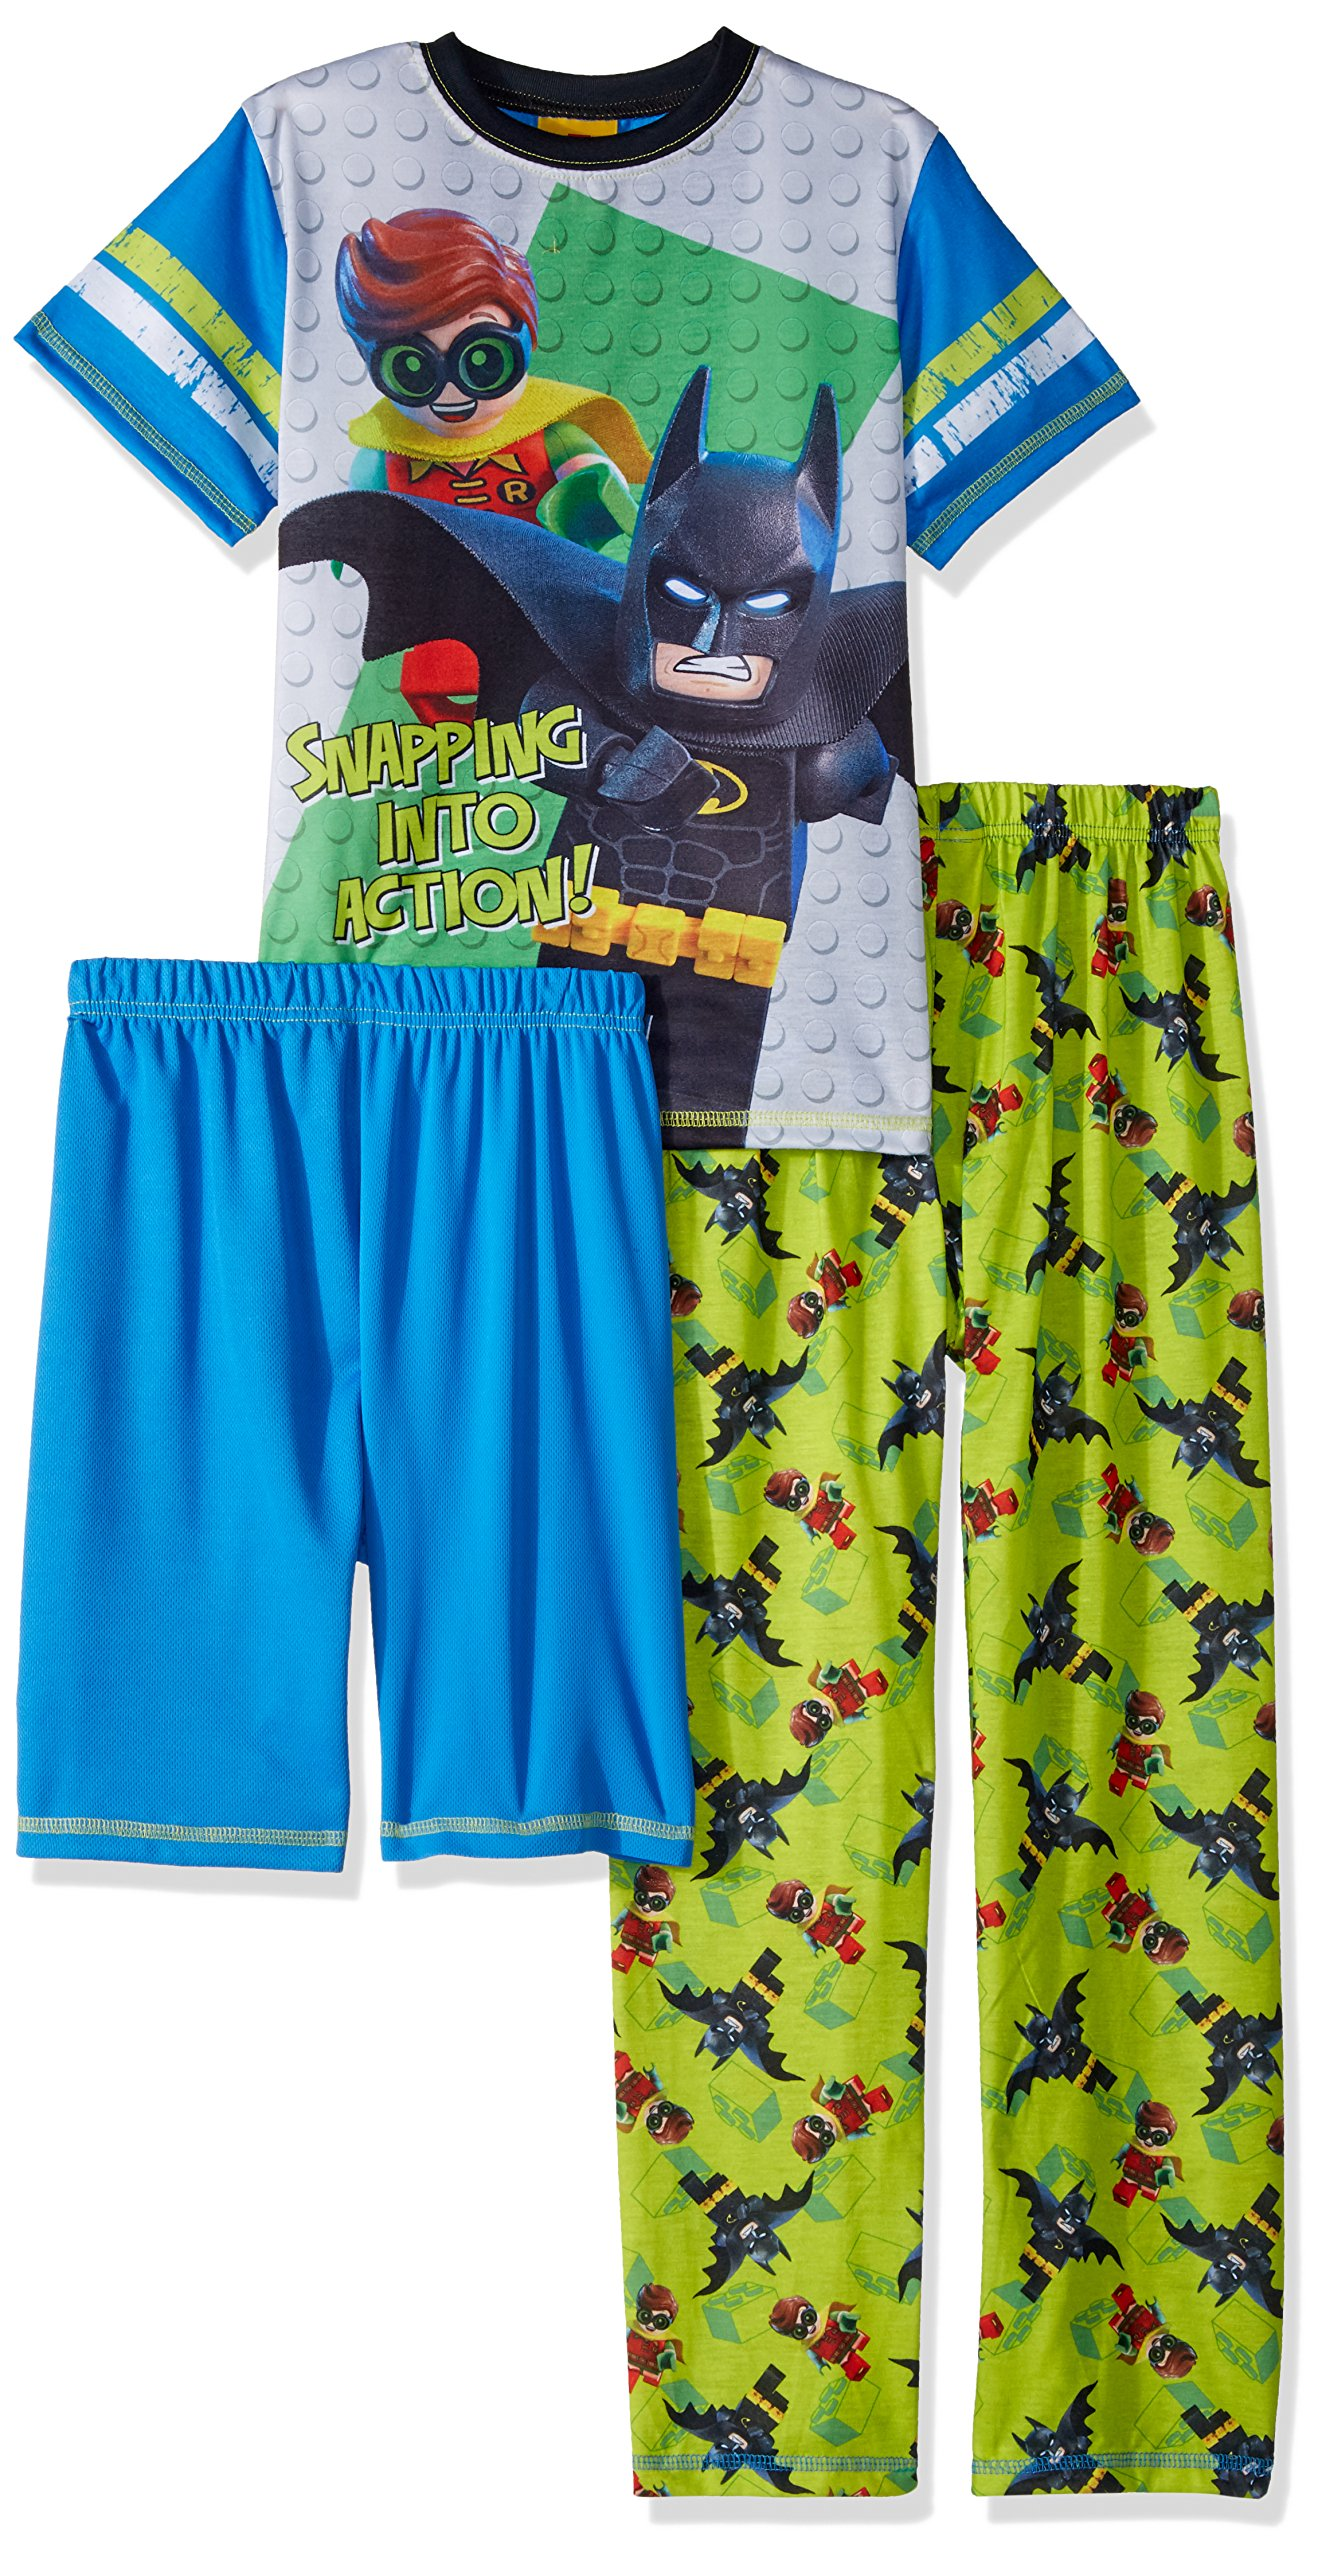 Lego Ninjago Big Boys Batman Movie Action 3 Pc Pajama Set Tee Shorts Pants Blugrn 8